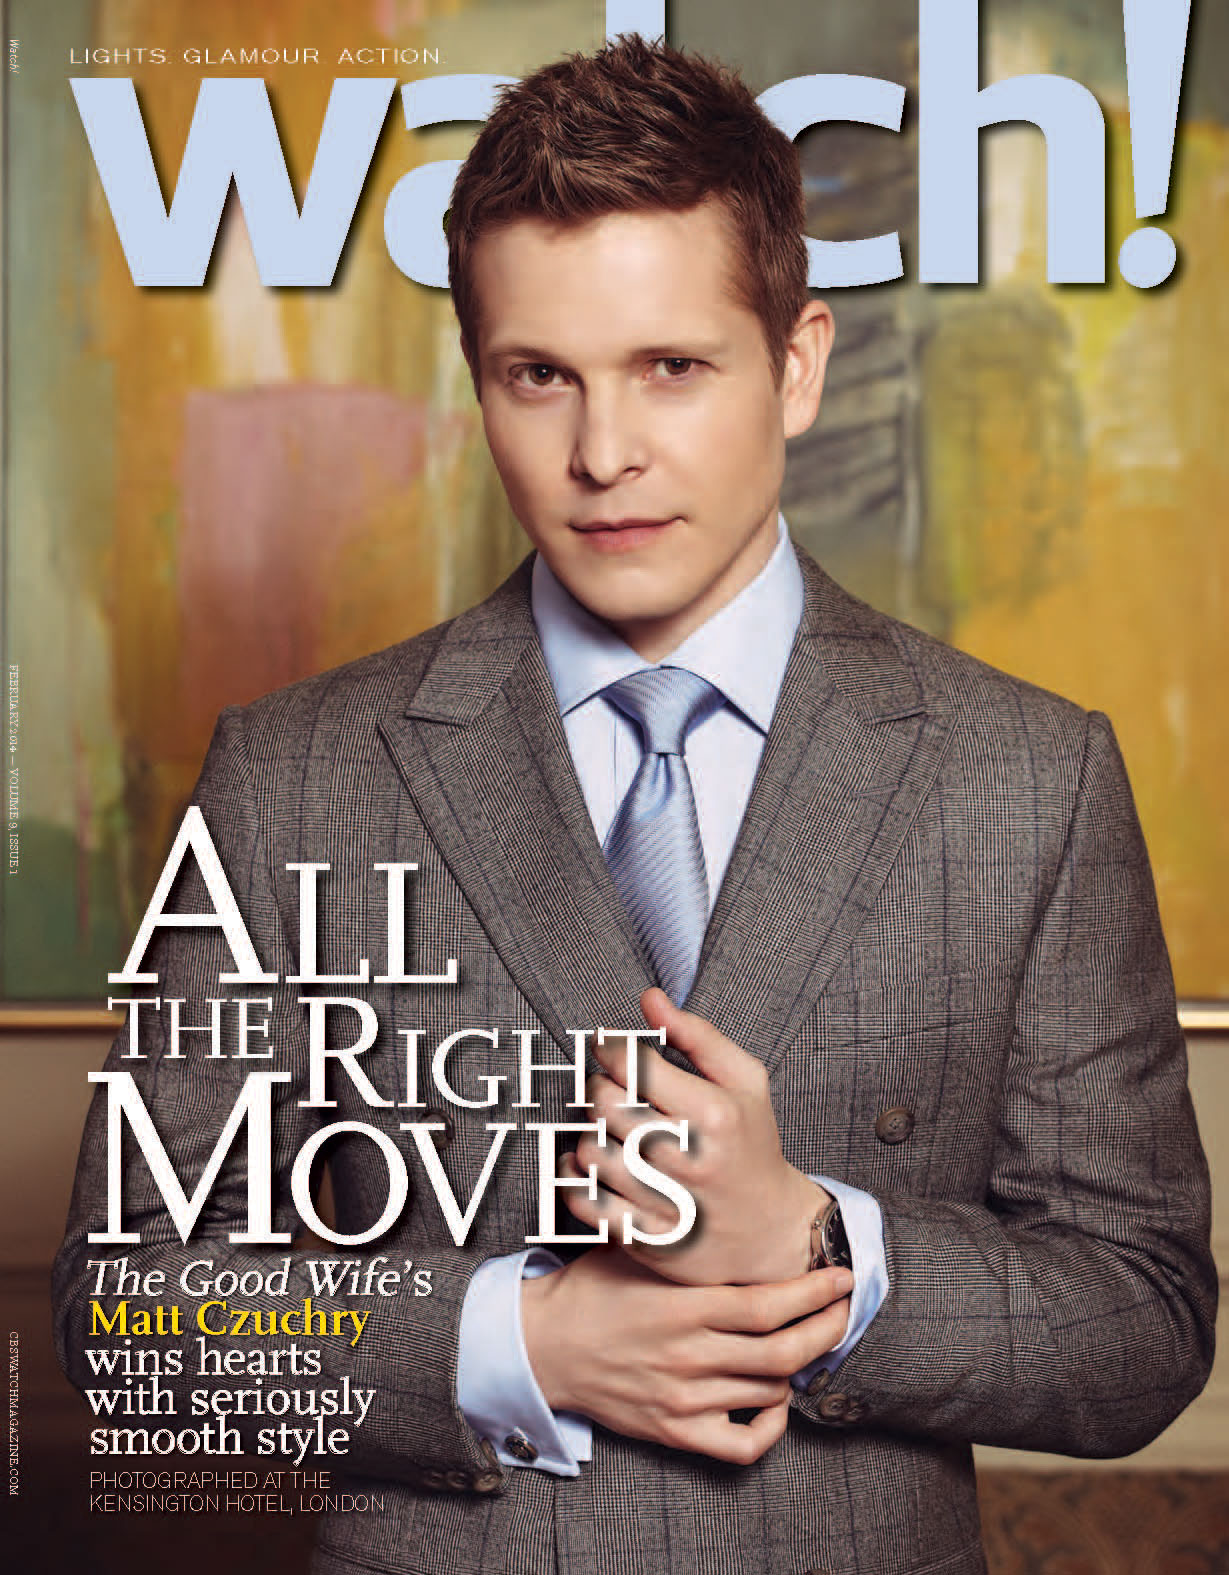 The Good Wife's Matt Czuchry Watch Magazine Cover